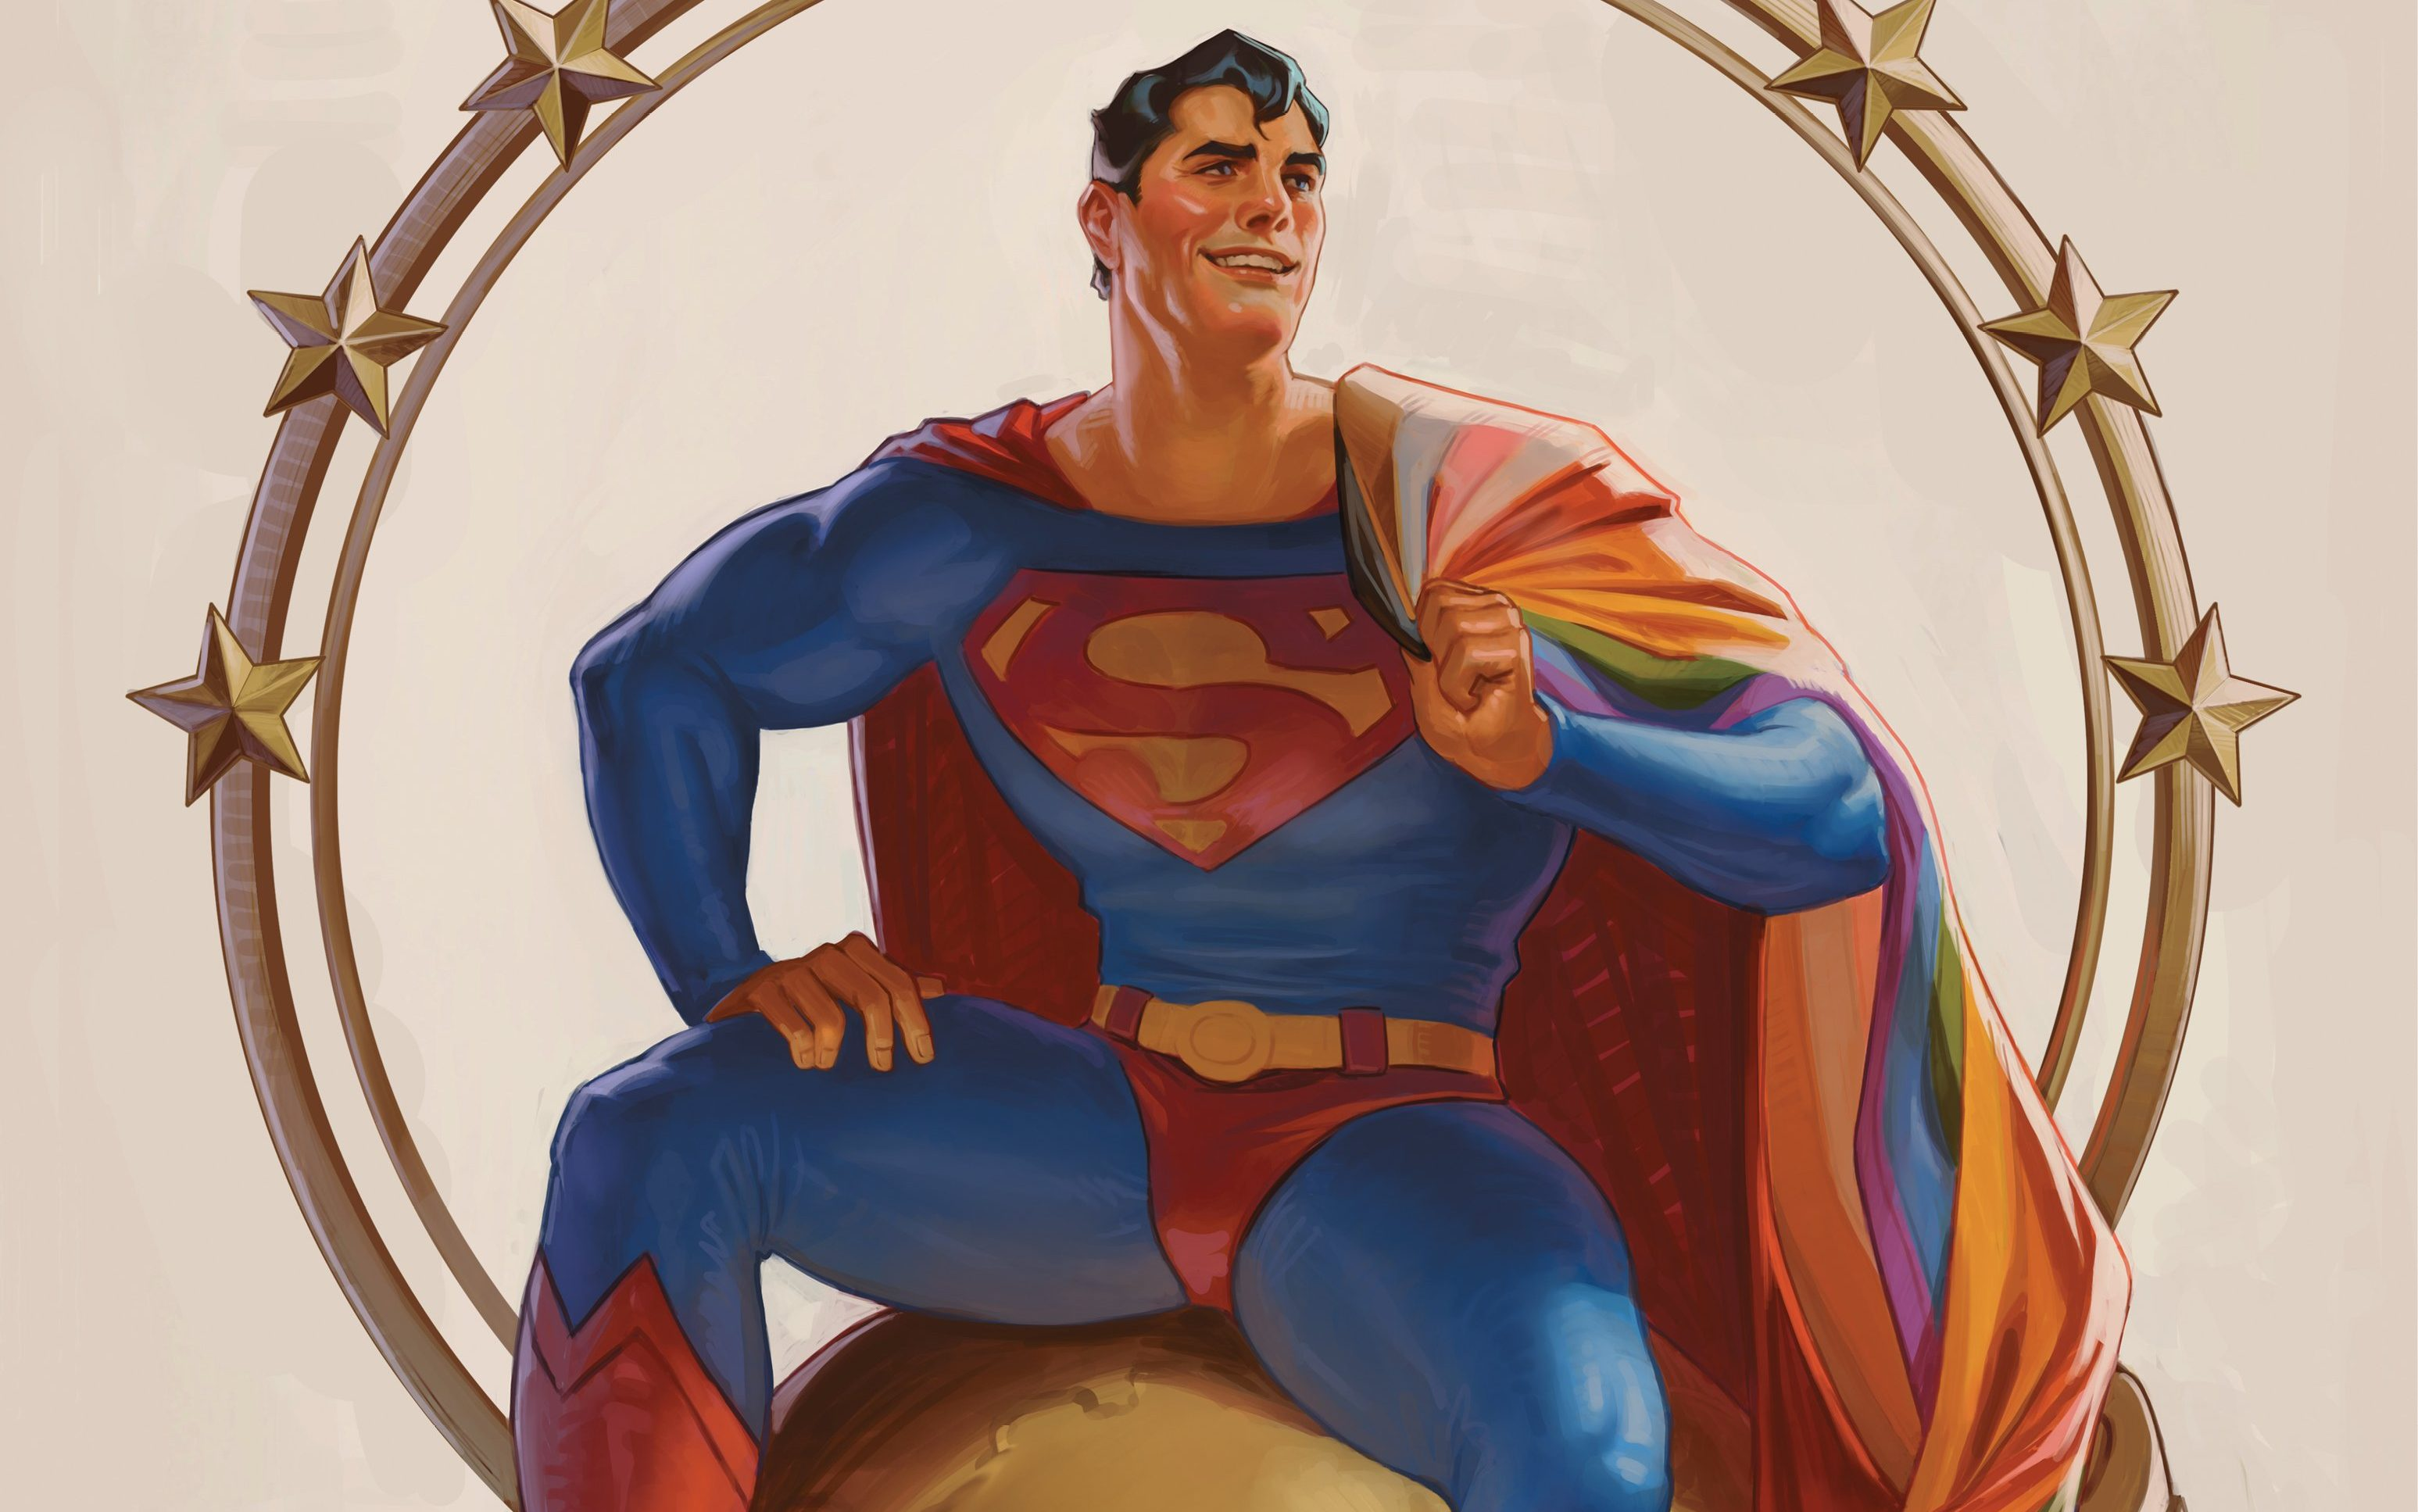 Superman sits on top of the daily planet with the pride flag draped over his shoulder.